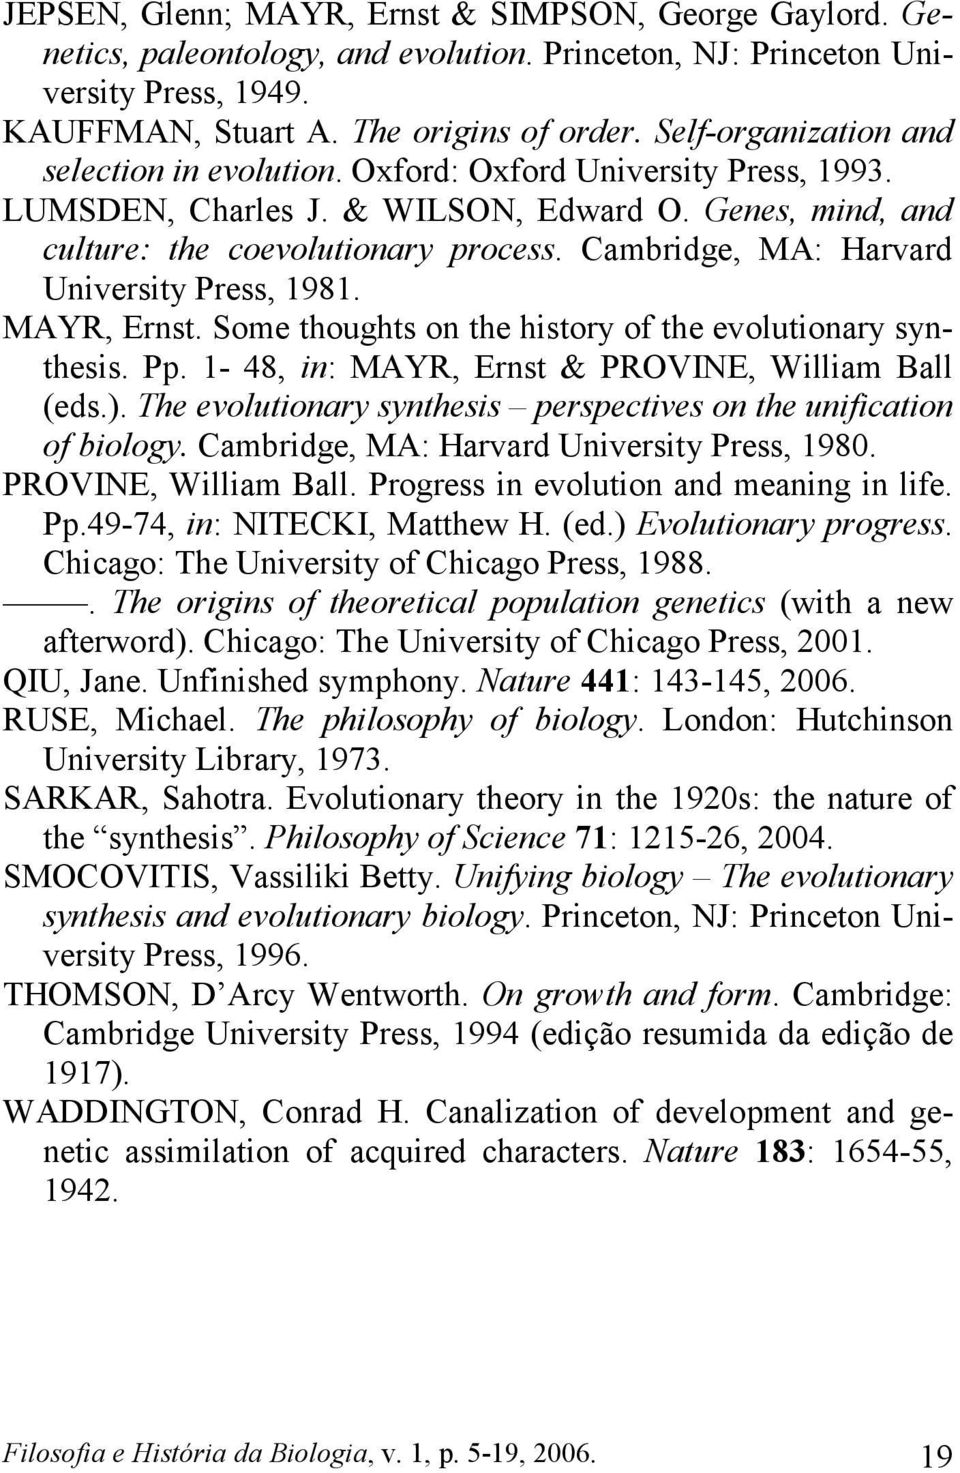 Cambridge, MA: Harvard University Press, 1981. MAYR, Ernst. Some thoughts on the history of the evolutionary synthesis. Pp. 1-48, in: MAYR, Ernst & PROVINE, William Ball (eds.).